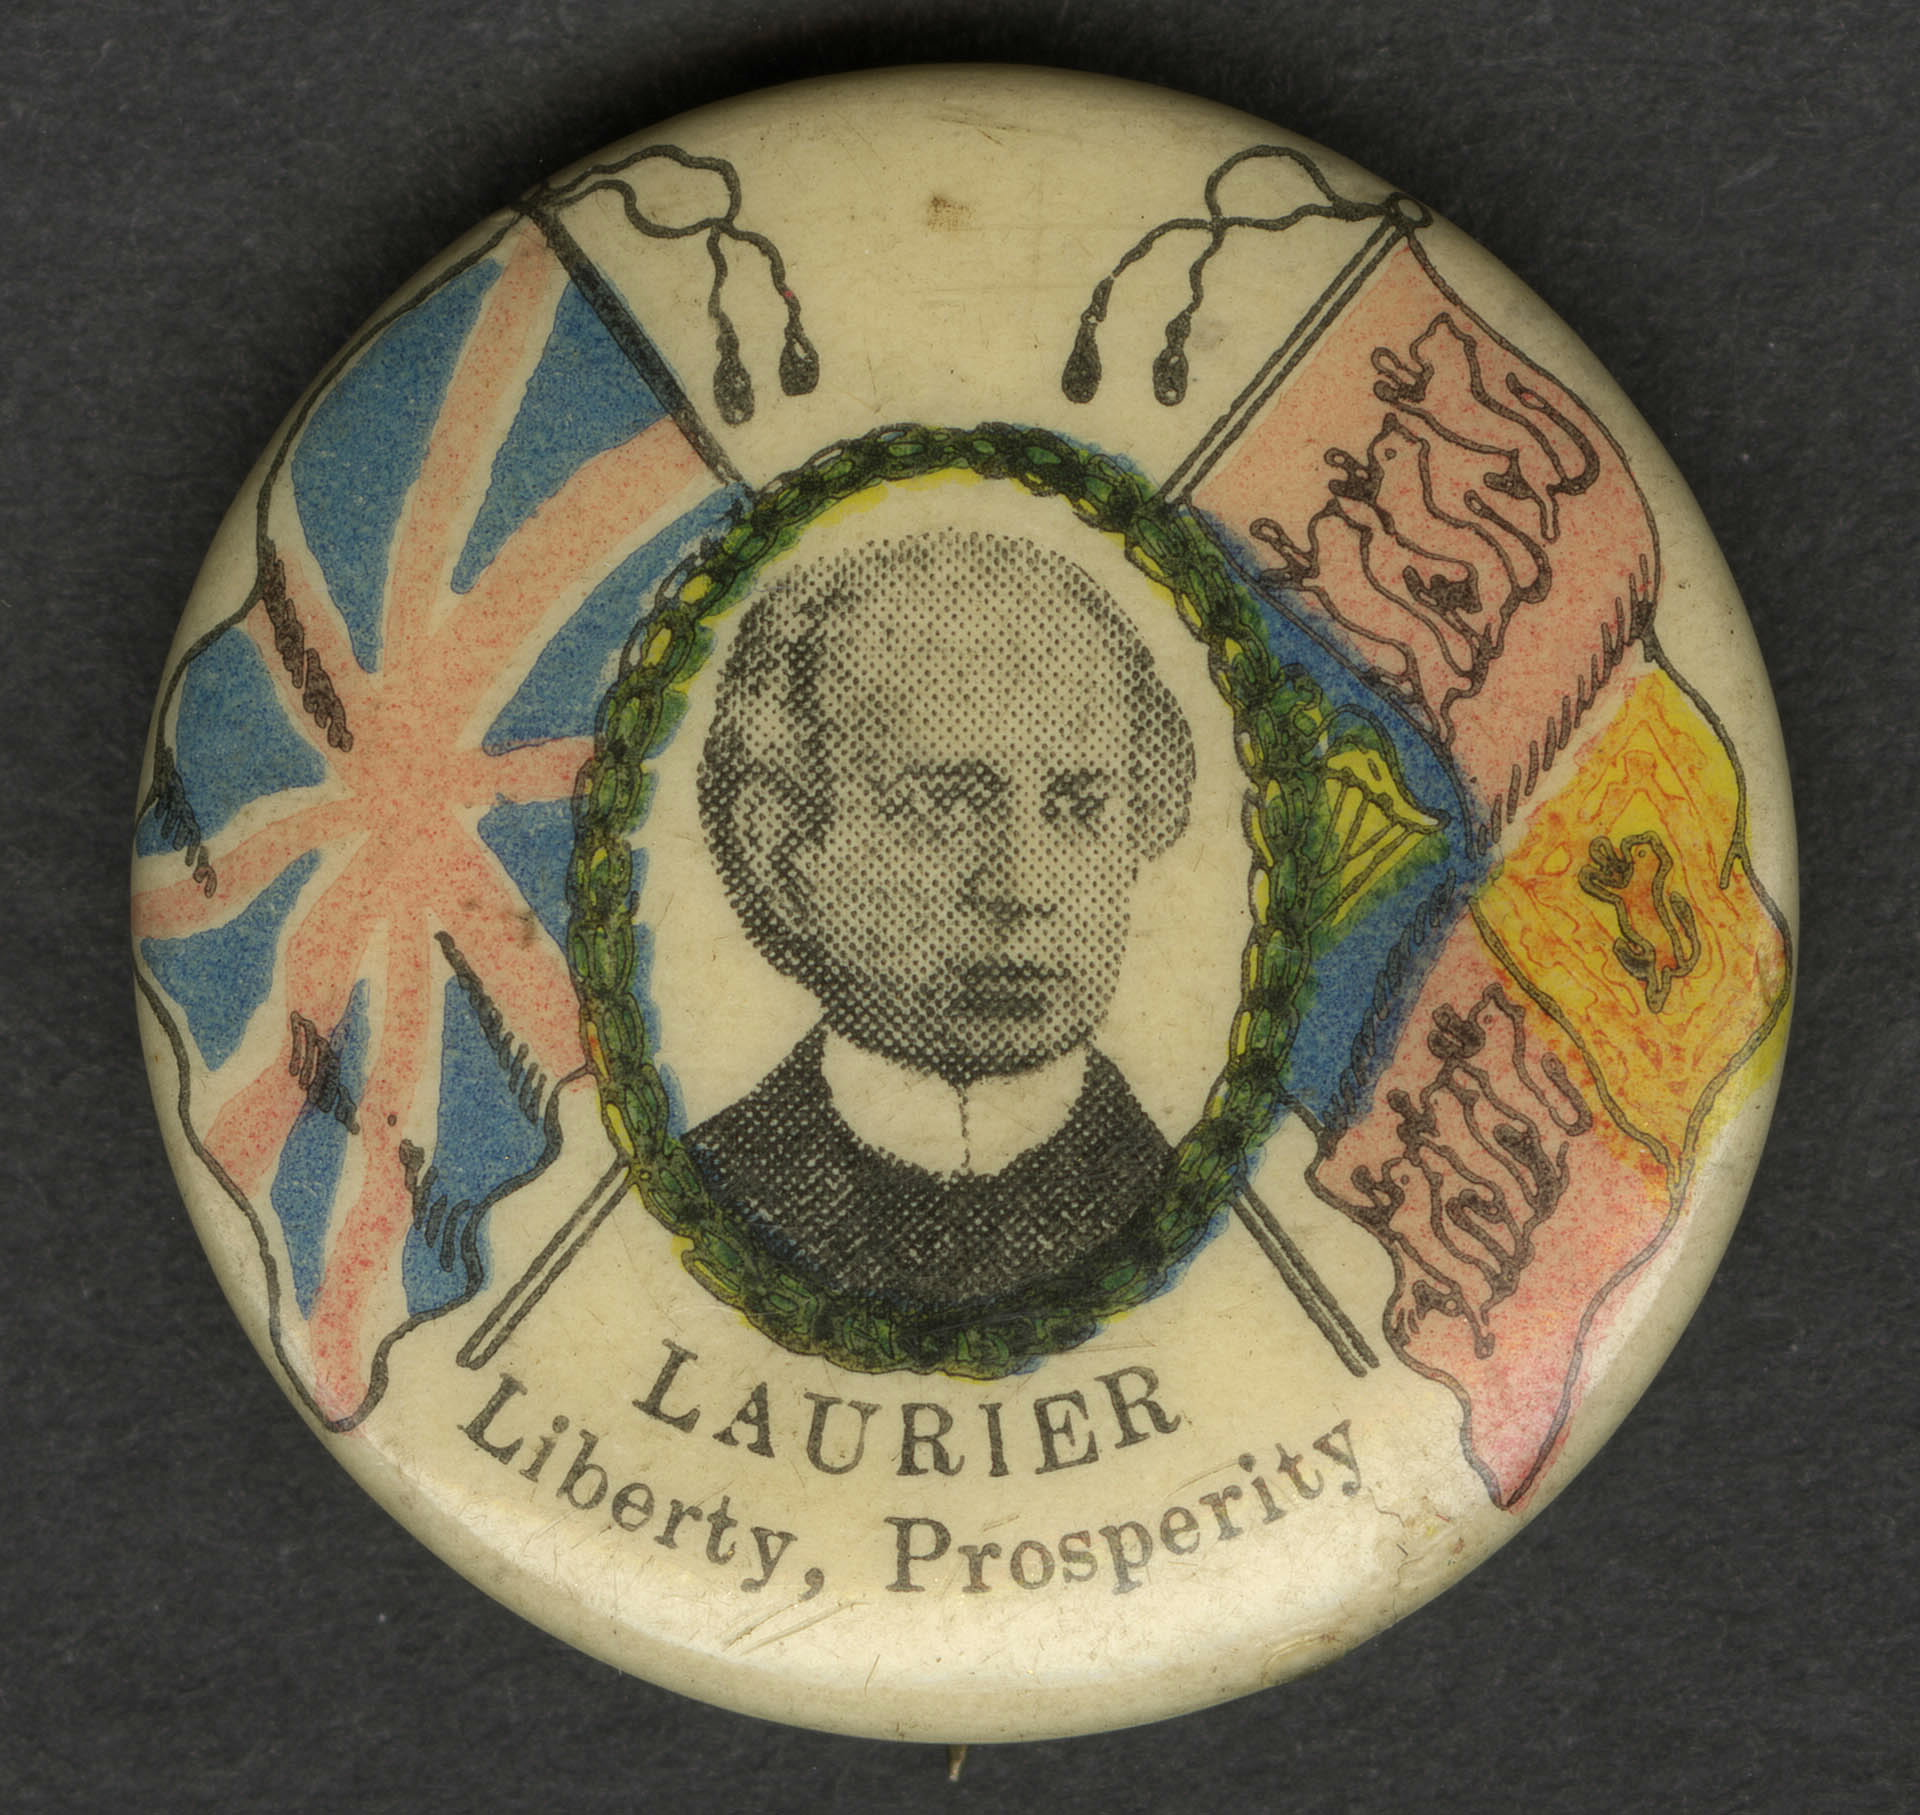 """photo of a button showing a man's face, with the words """"Laurier: Liberty, Prosperity"""""""